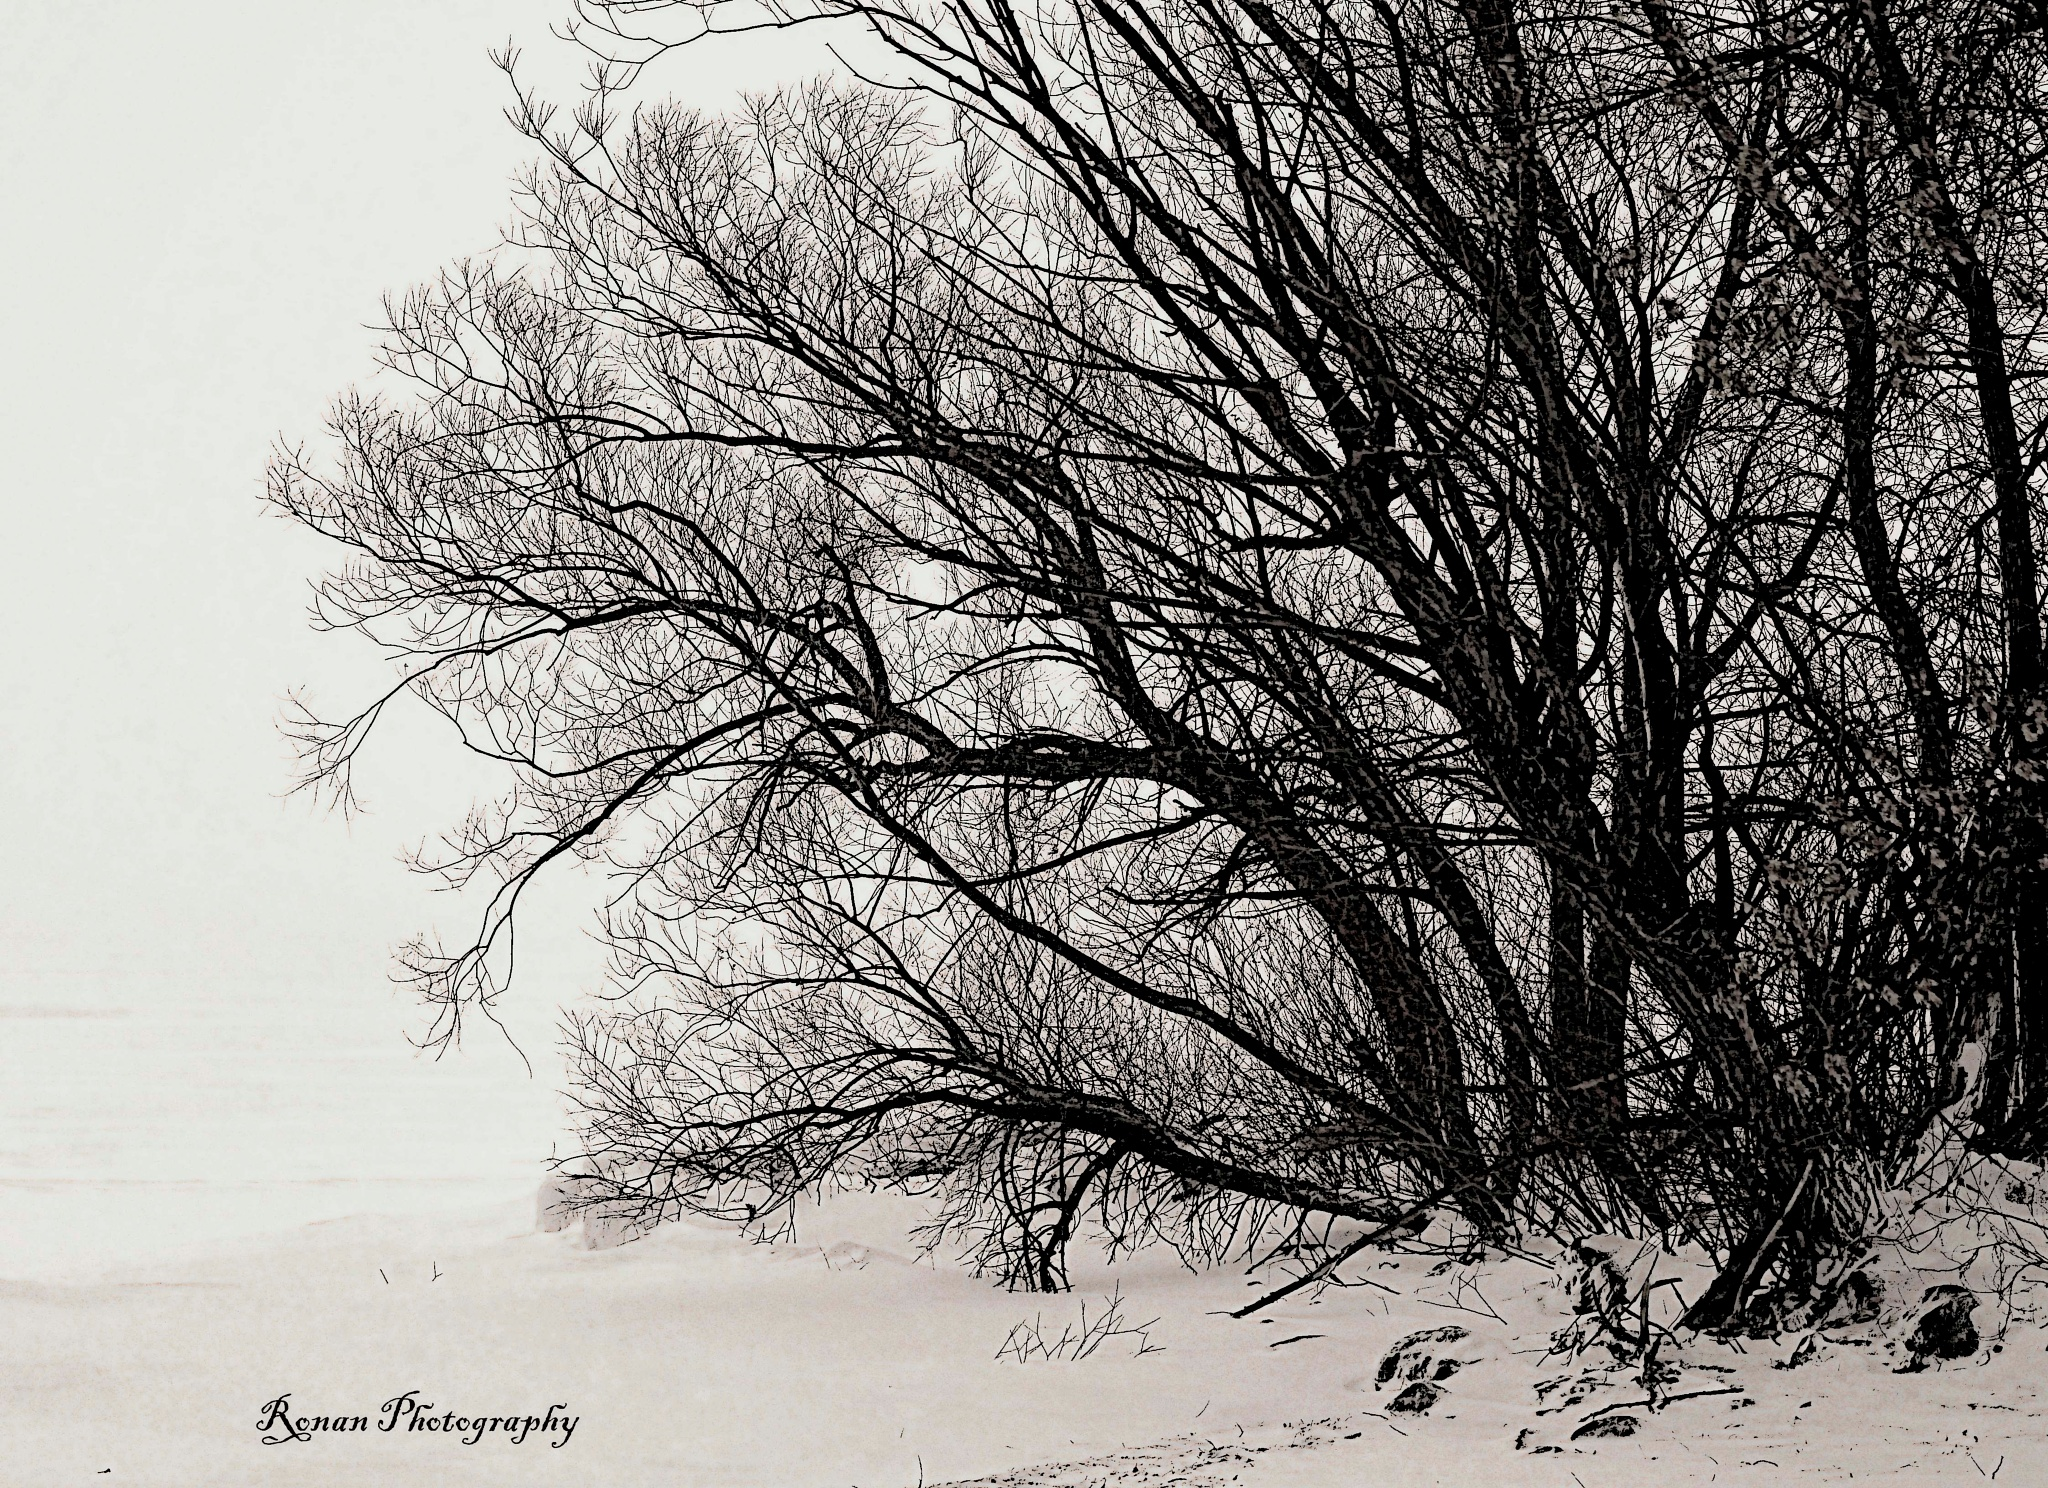 Black and White Snow and Tree by Kimberly Ronan